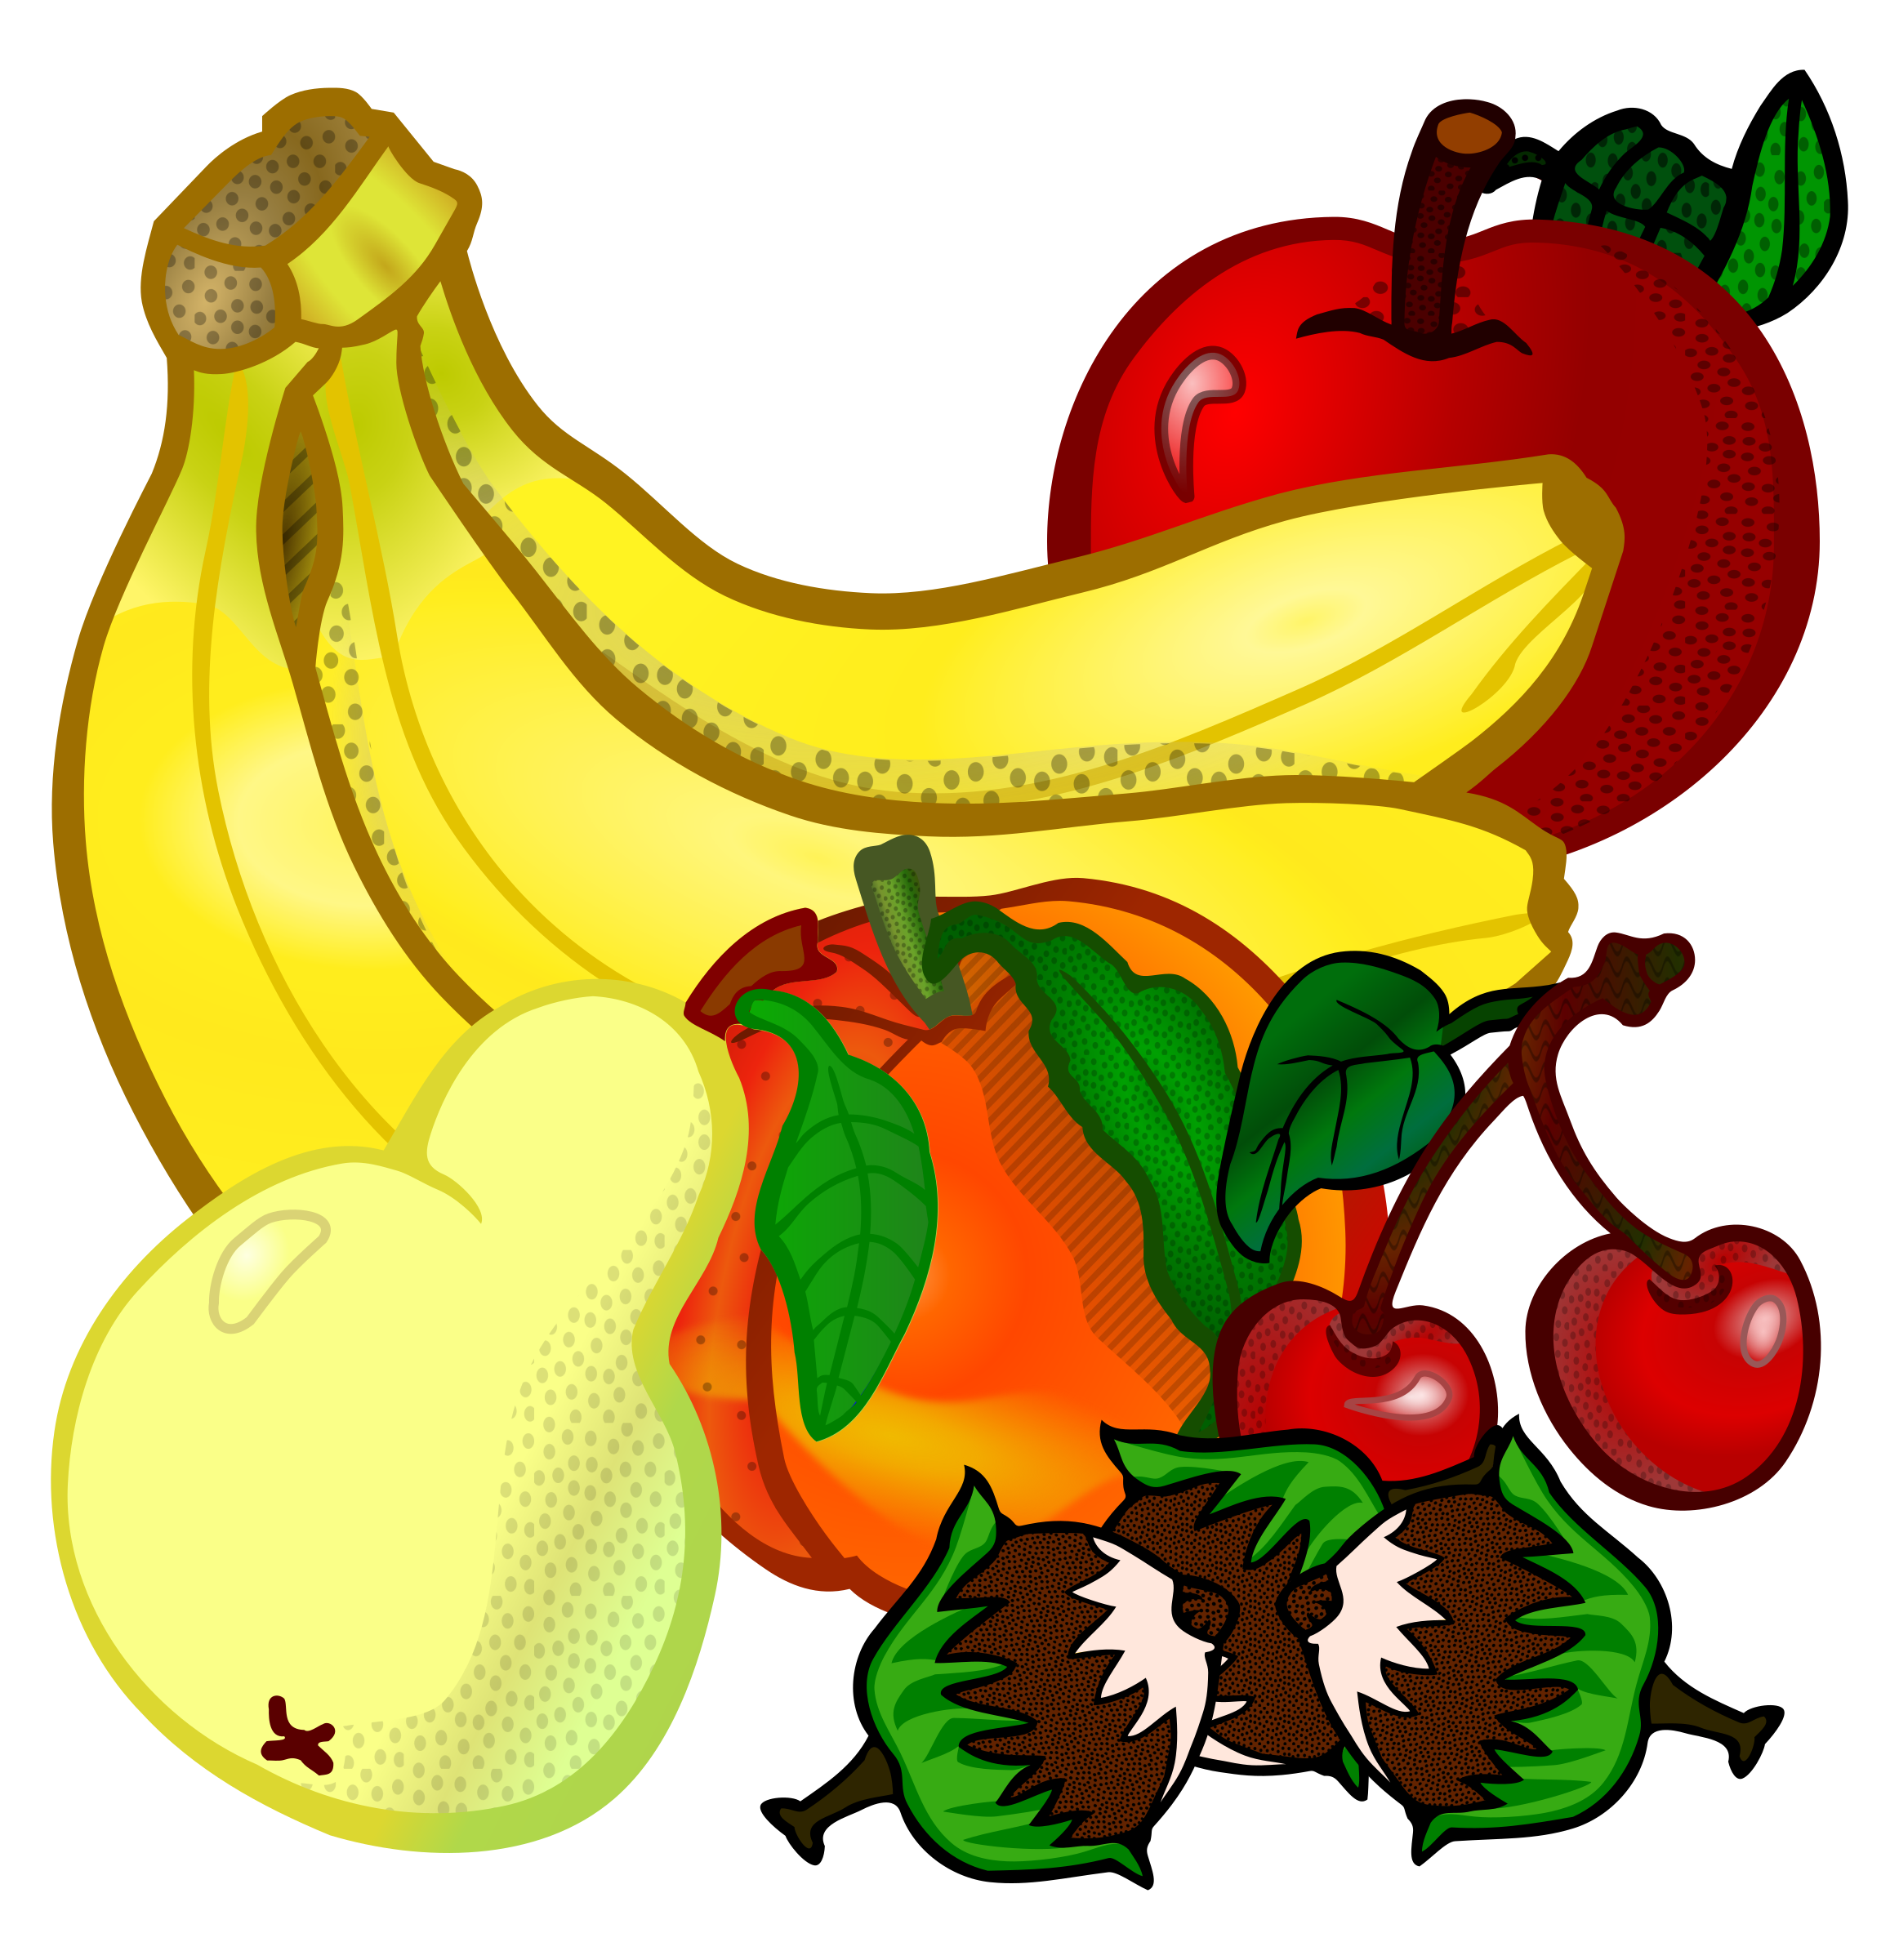 Pictures of fruits cliparts graphic free Fruits Cliparts - Making-The-Web.com graphic free